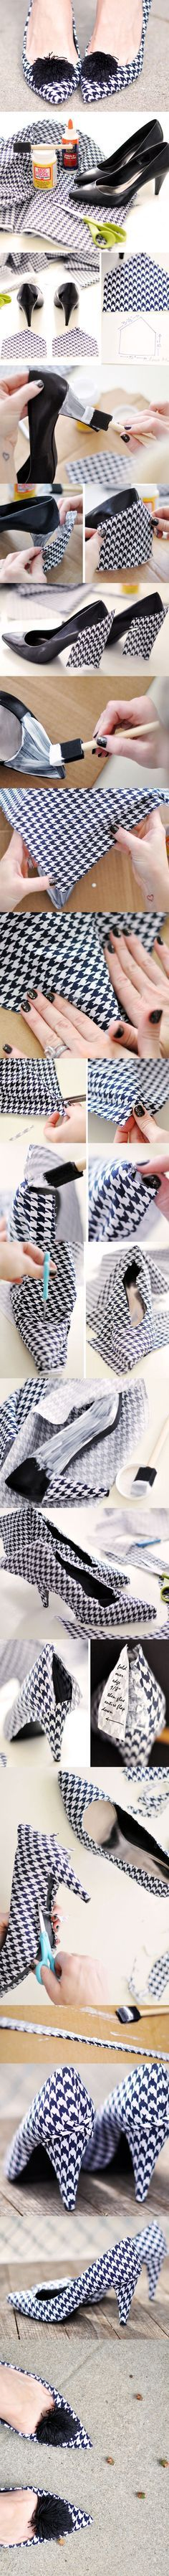 DIY Designer Shoes crafts craft ideas easy crafts diy ideas diy crafts diy clothes easy diy fun diy diy shoes craft clothes craft fashion fashion diy craft shoes